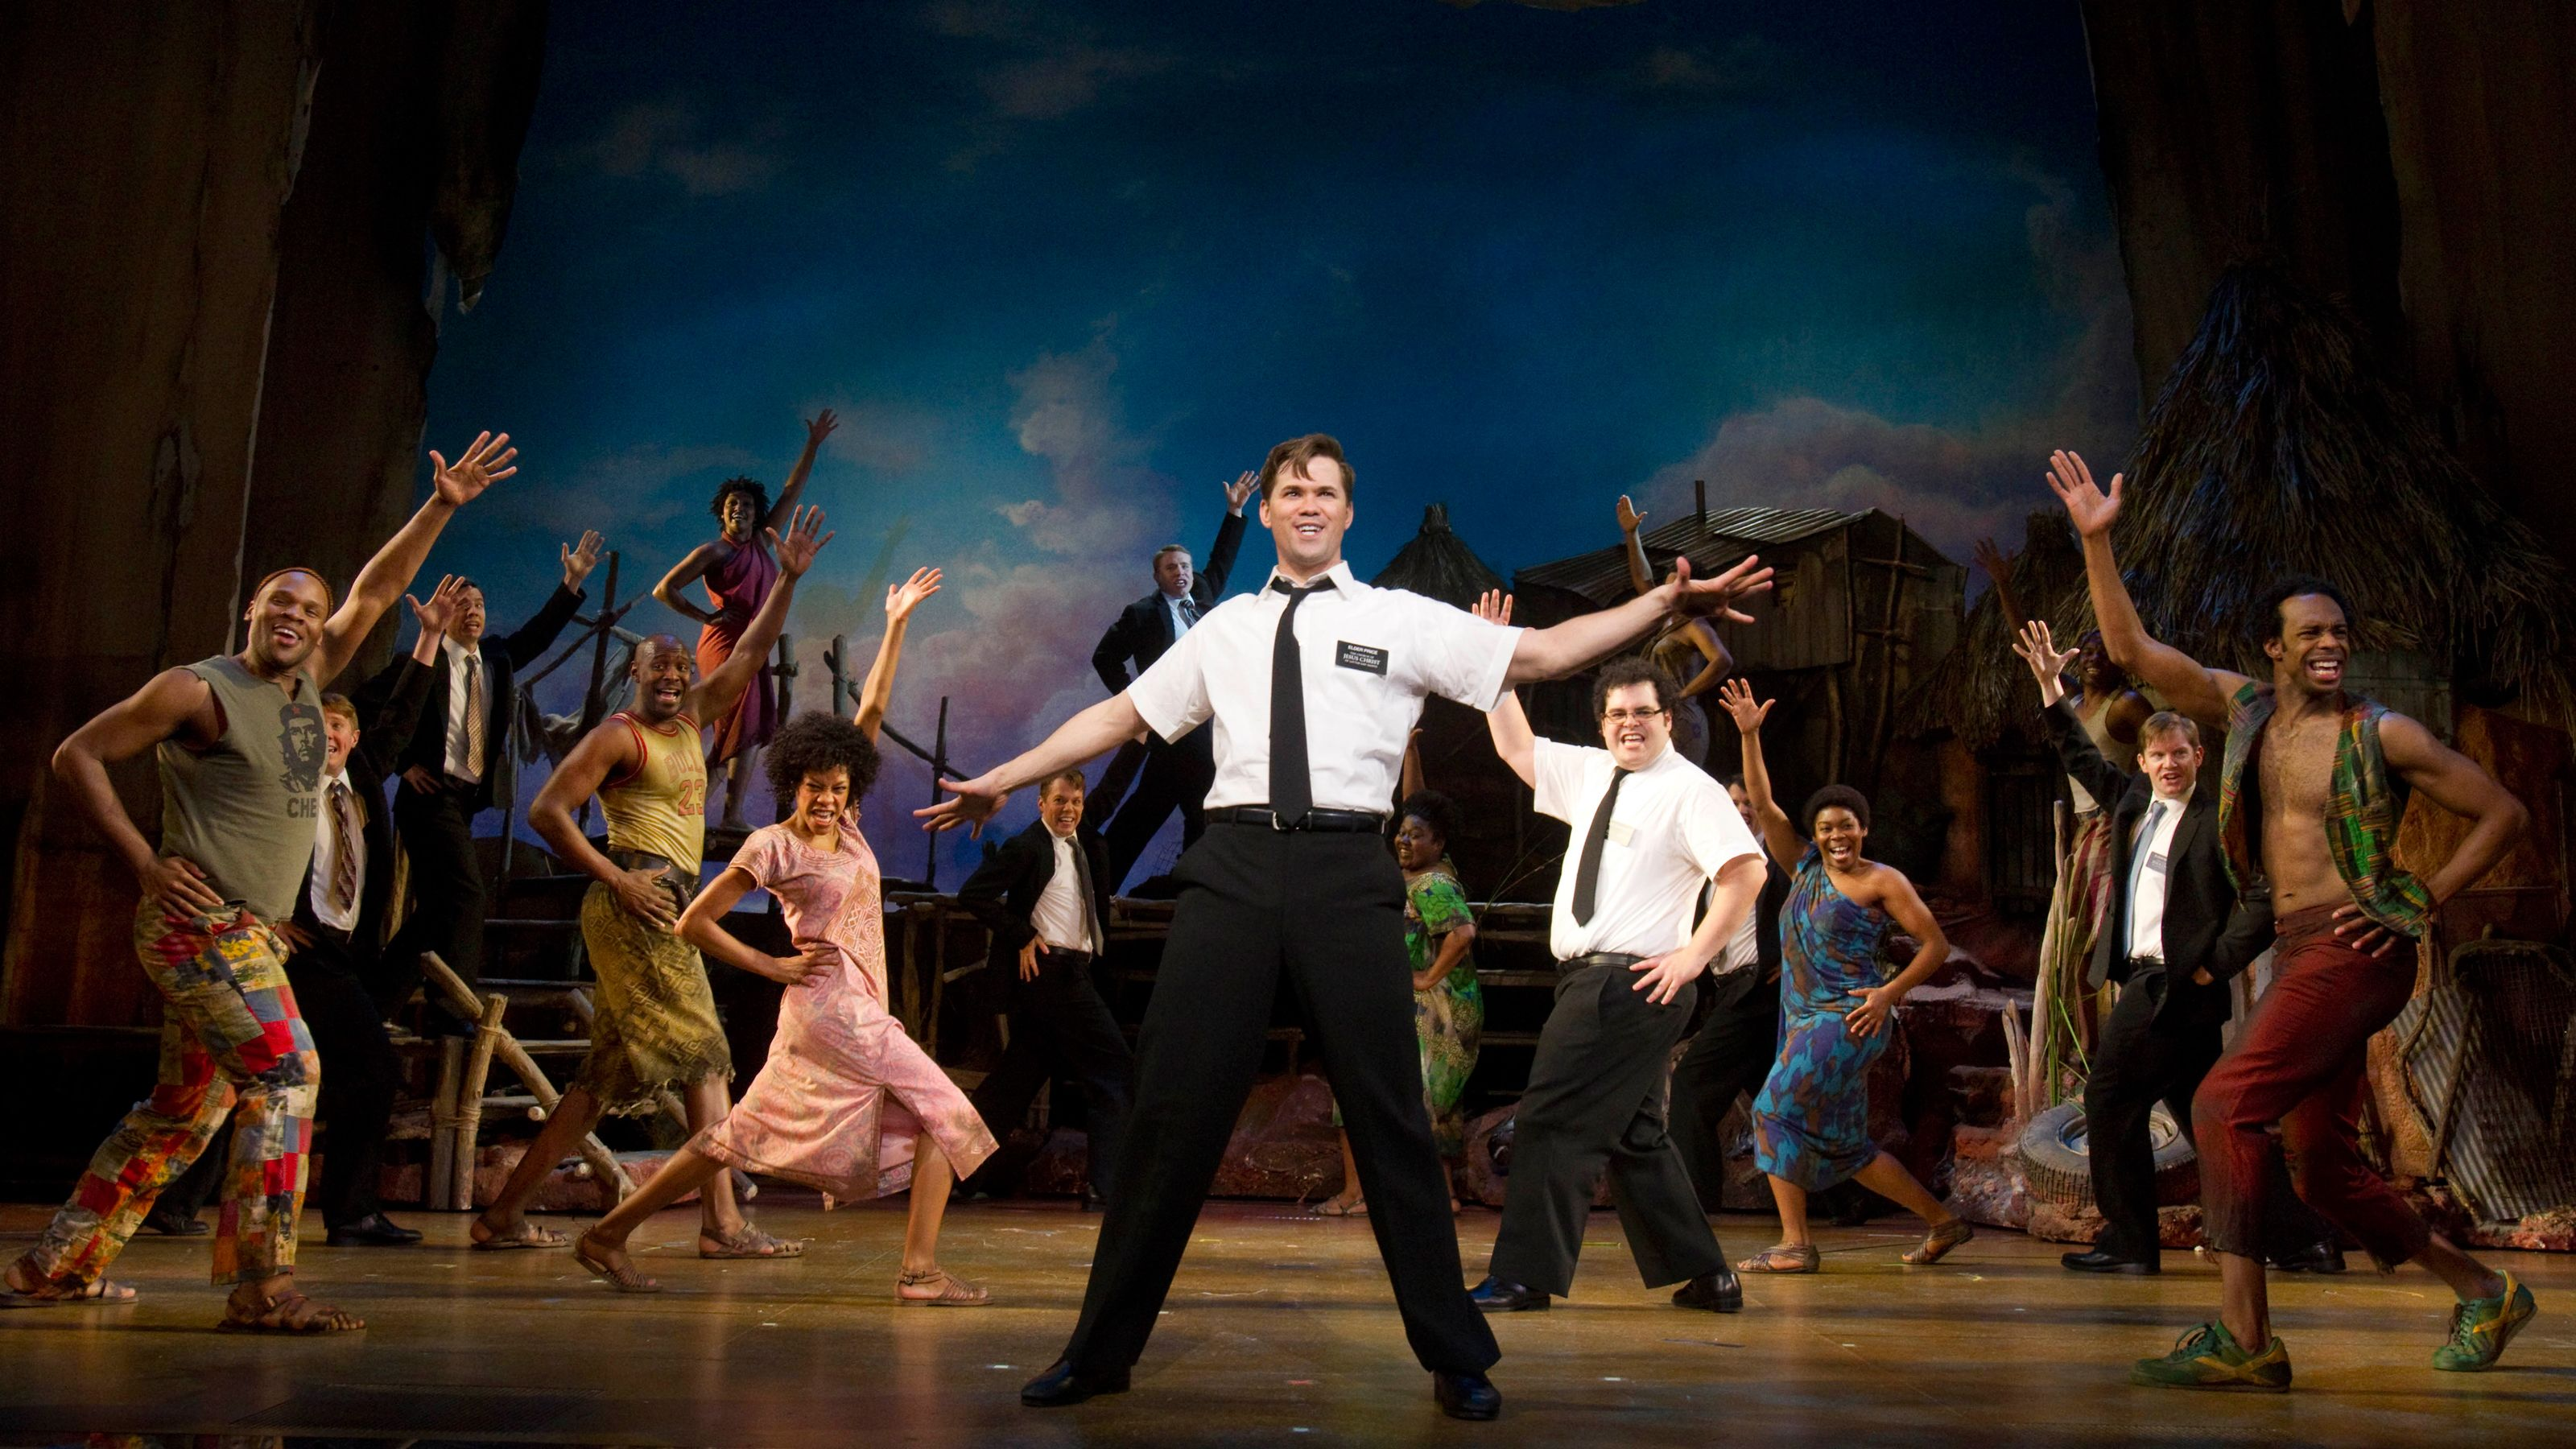 Production photo from Book of Mormon in New York